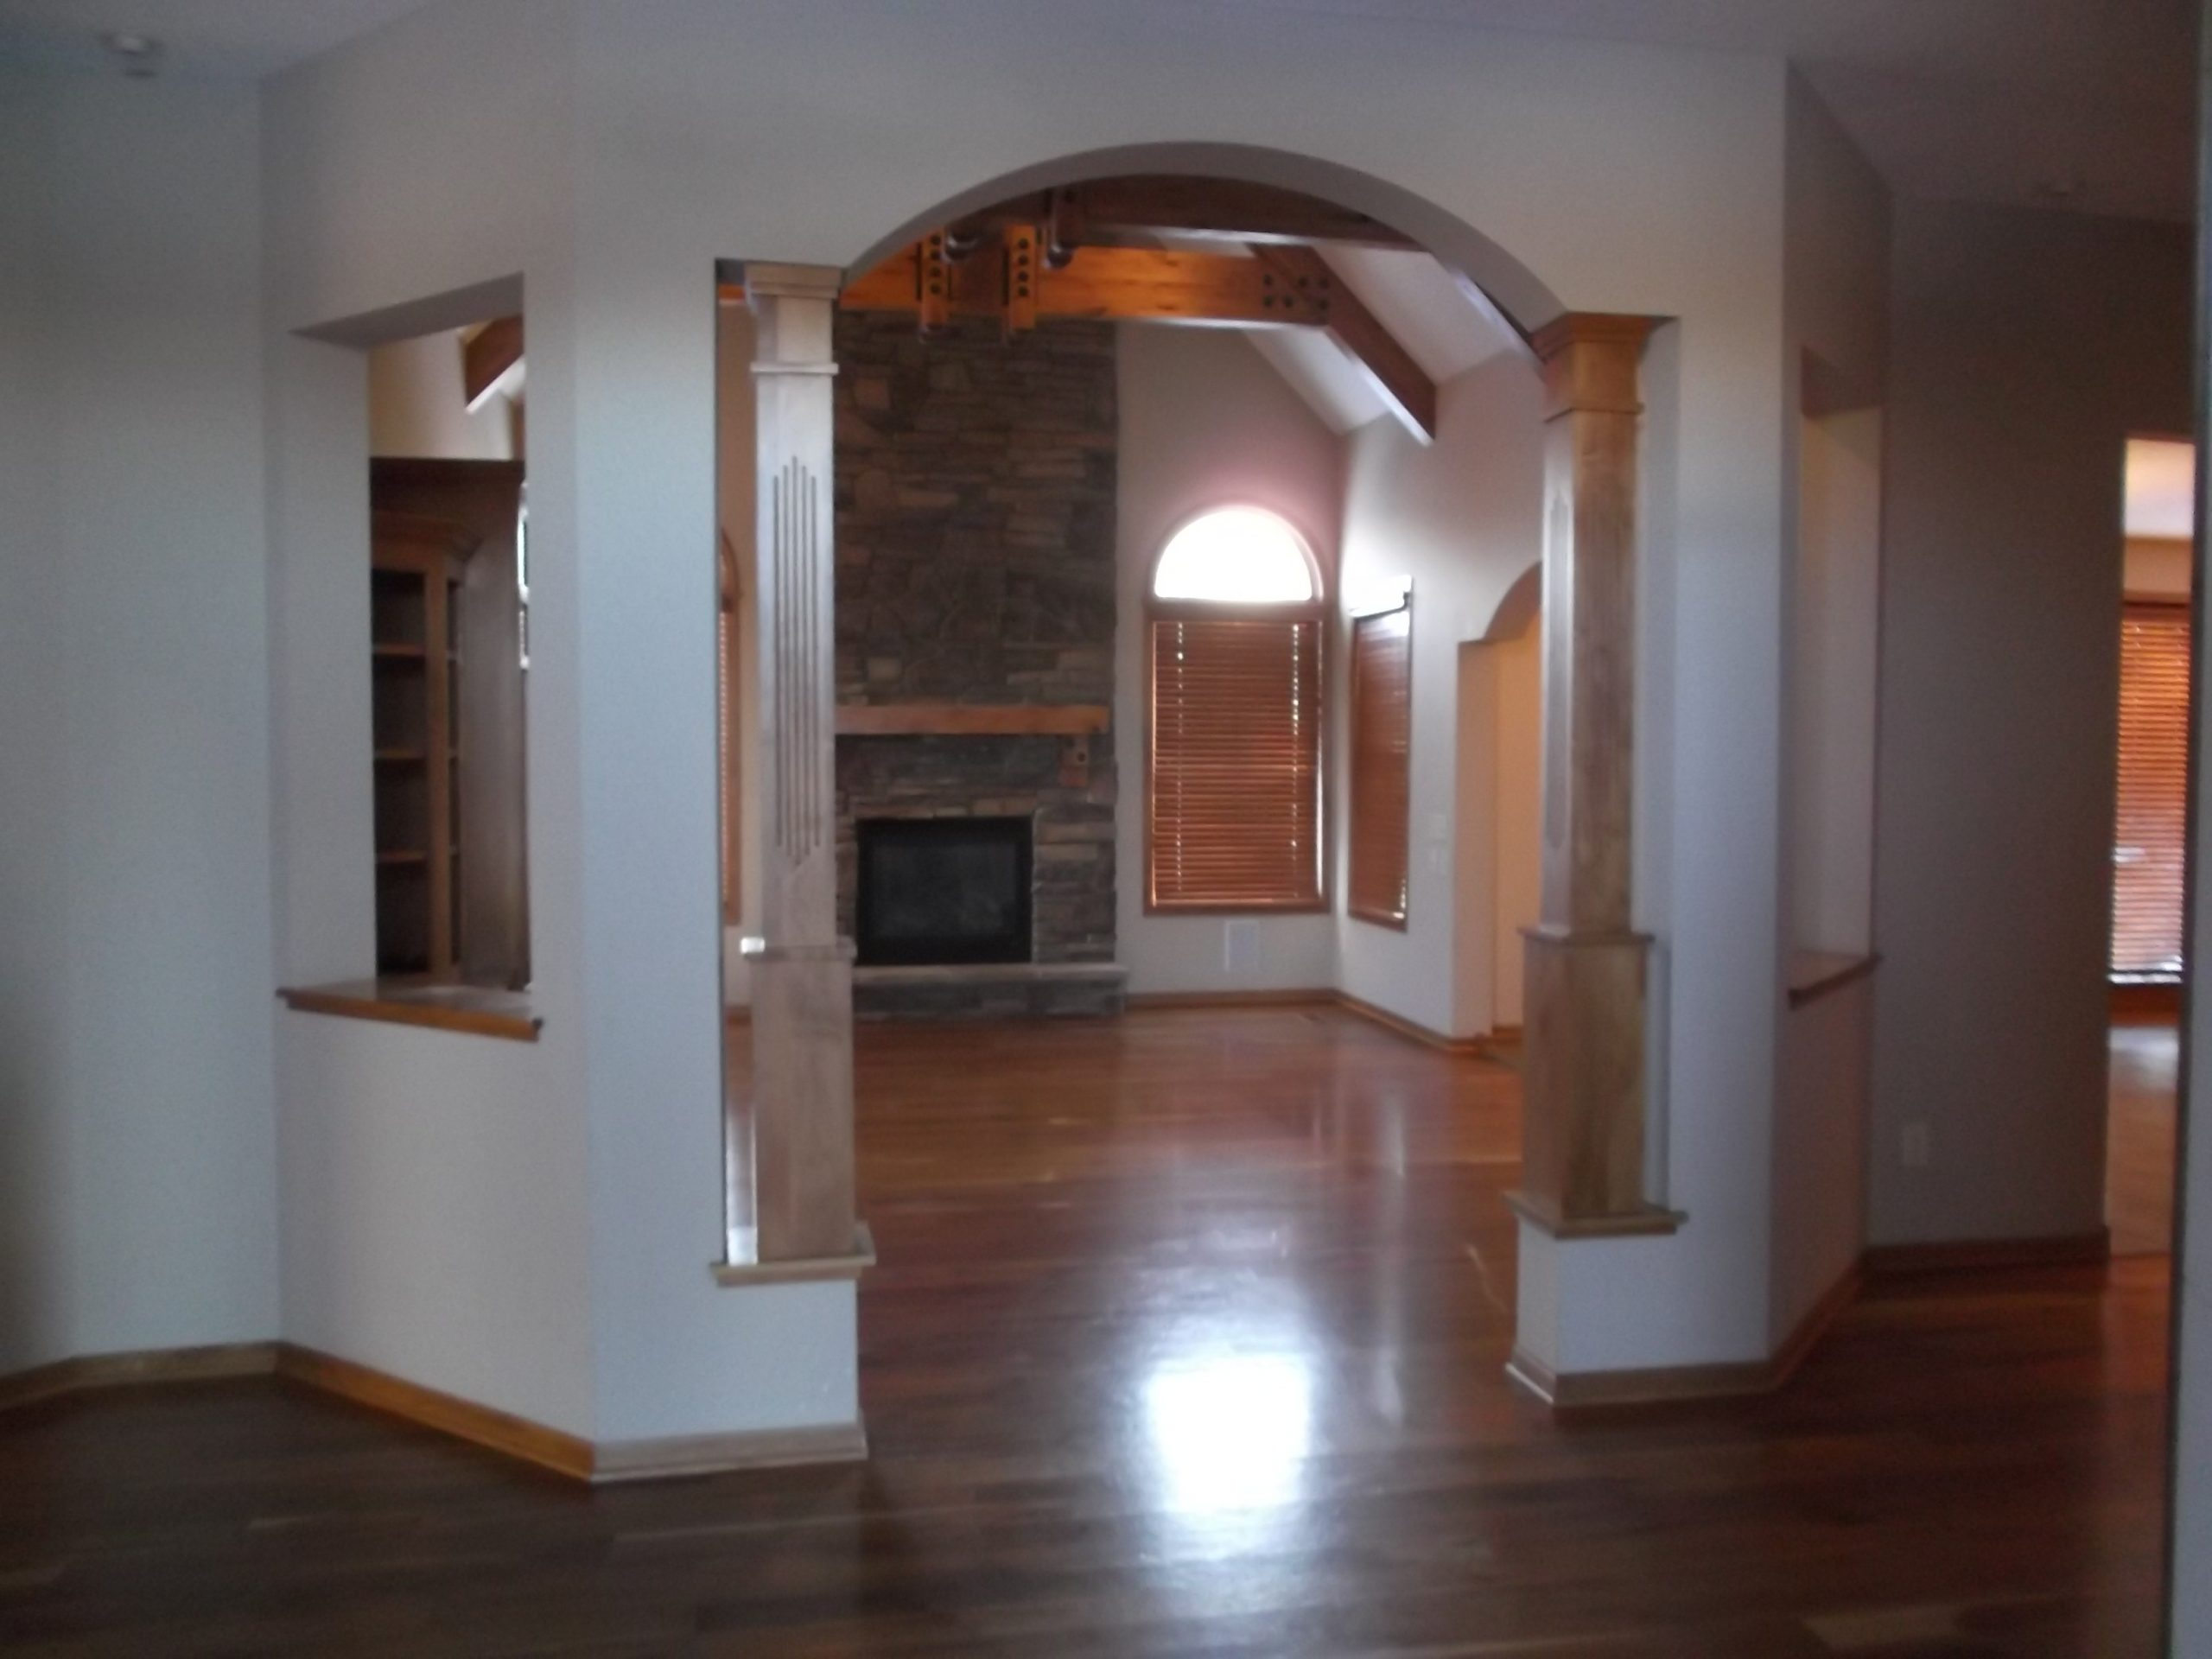 In the original home, the entry to the living room felt cramped and confined, flanked by outdated columns.